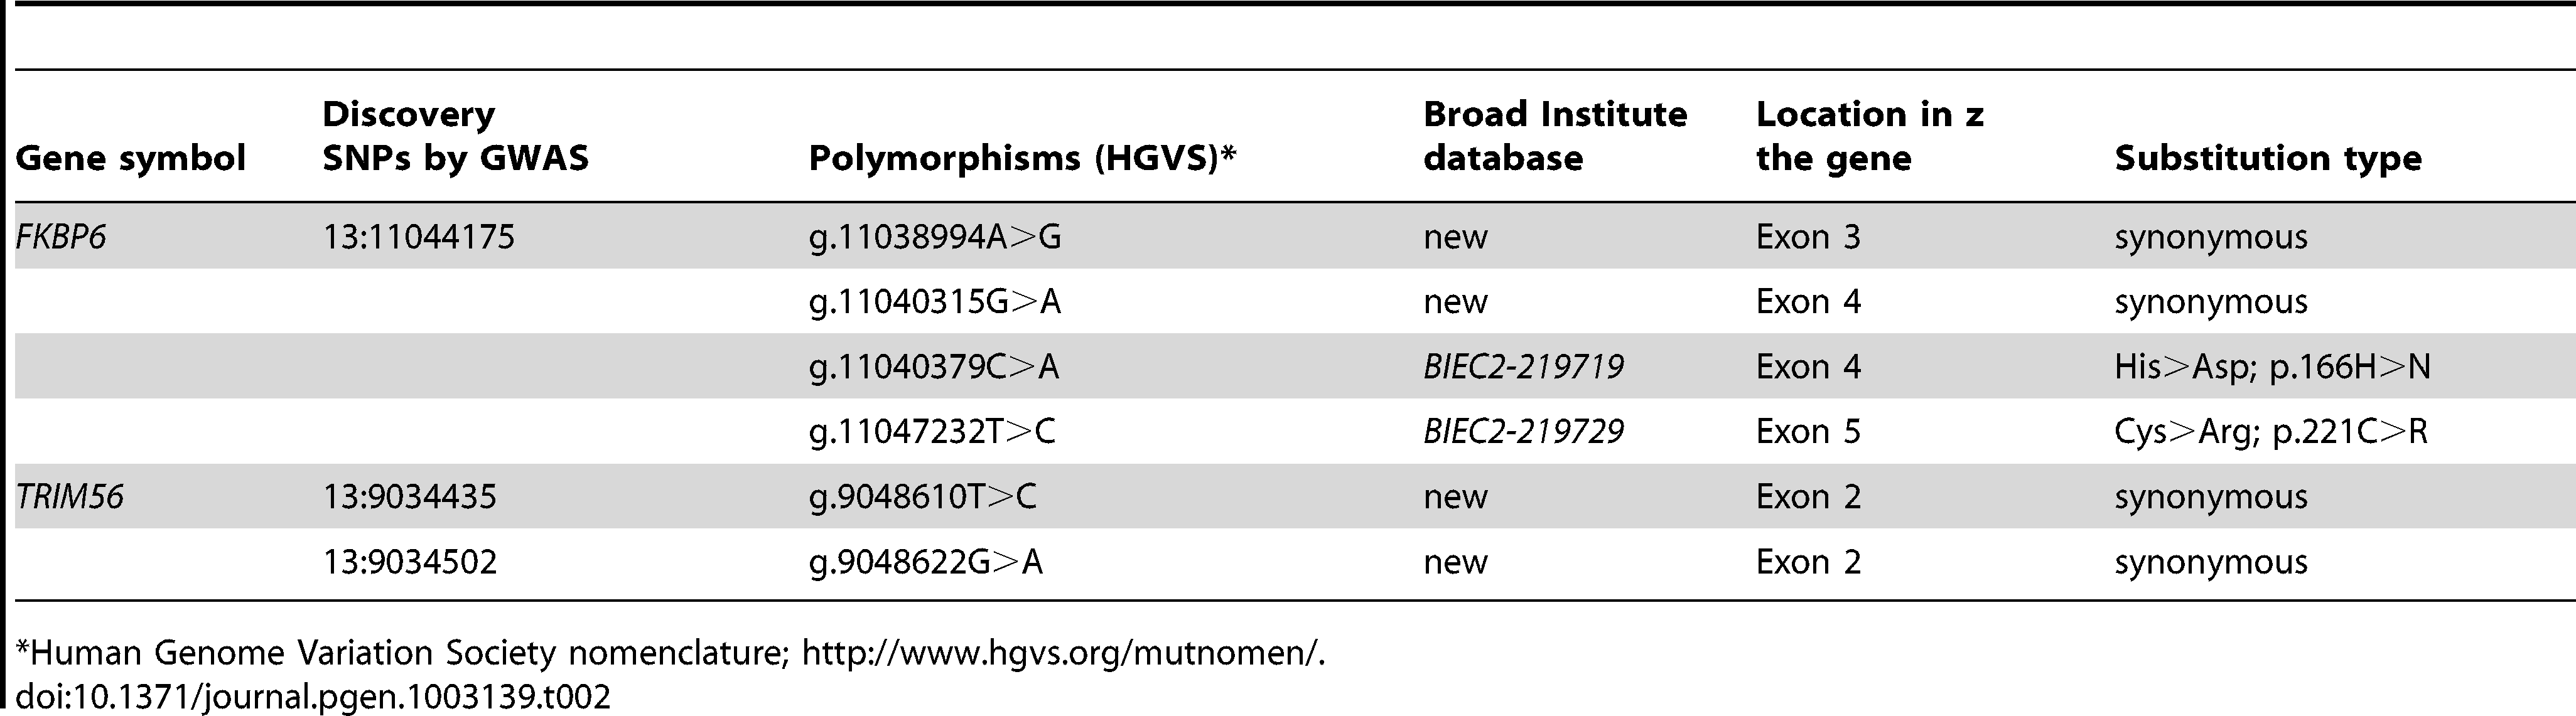 Polymorphisms identified in the sequences of <i>FKBP6</i> and <i>TRIM56</i>.